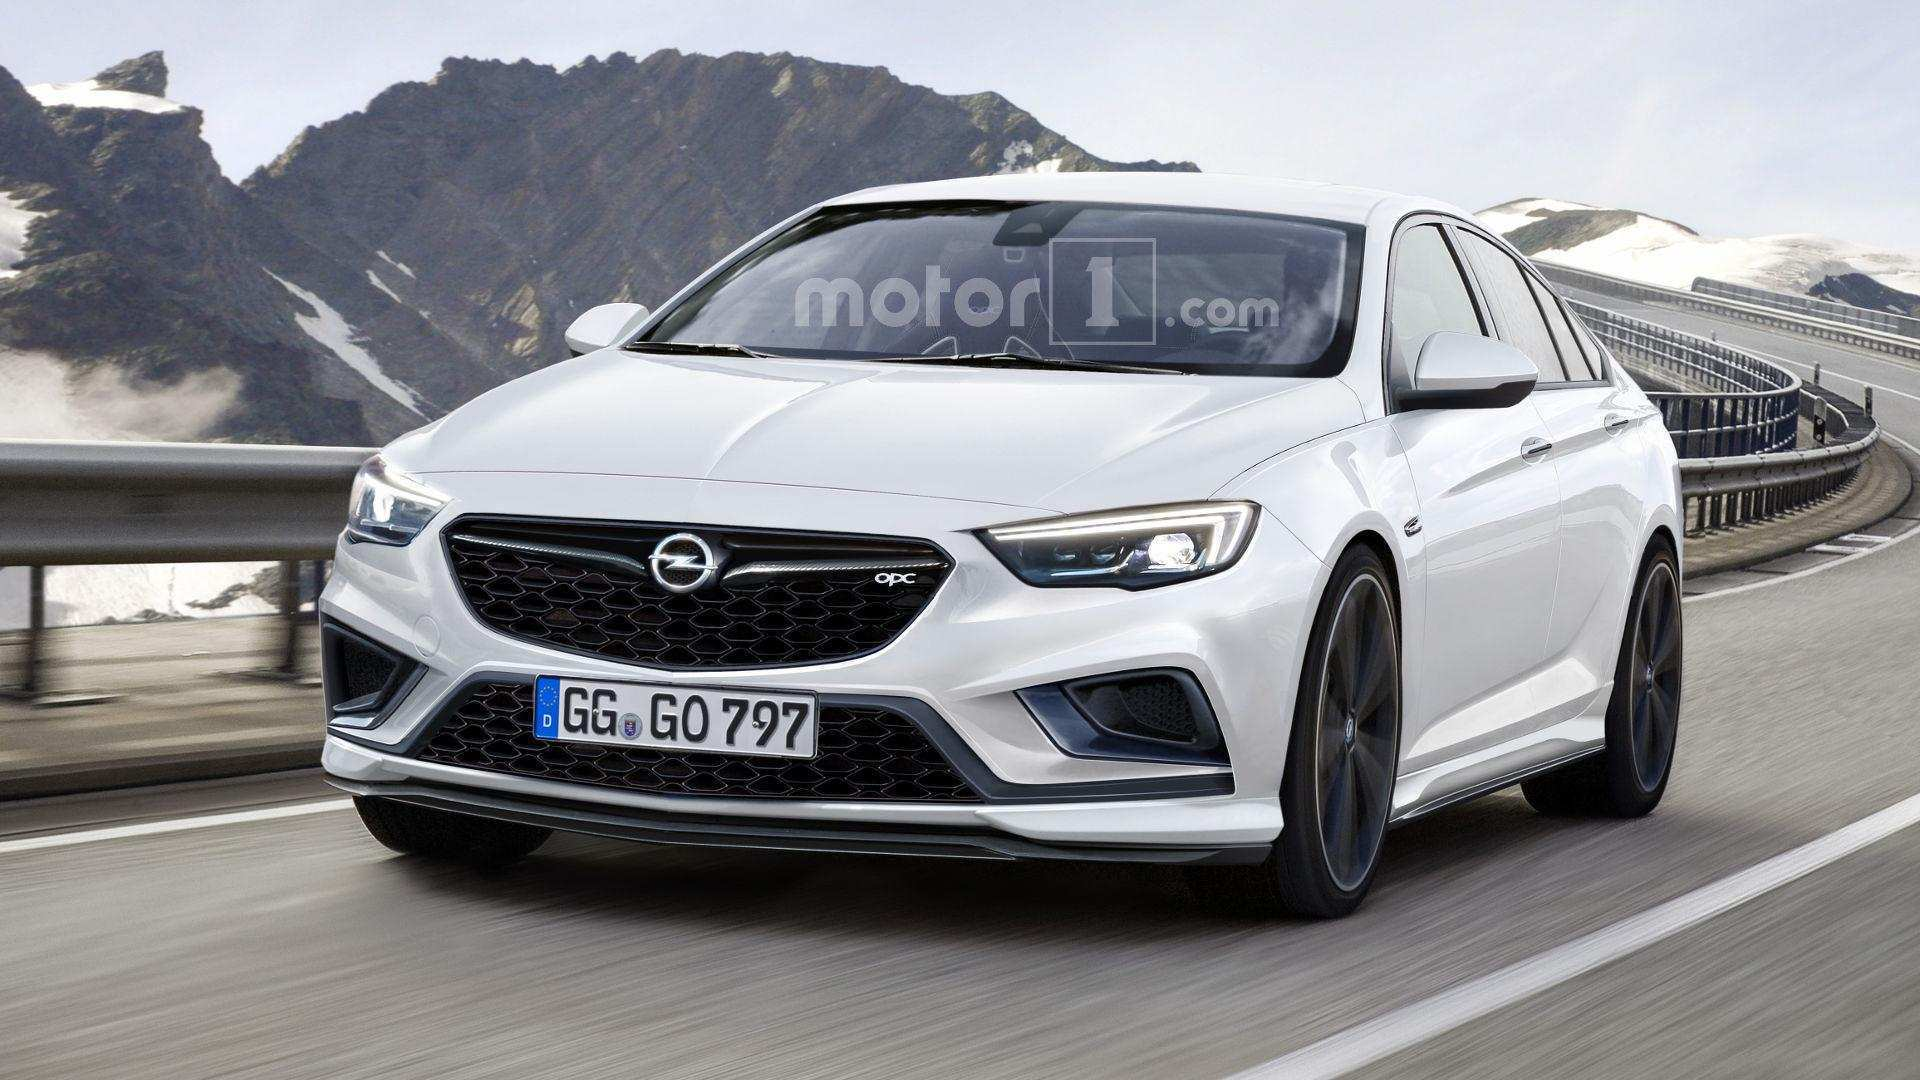 41 The Best Opel Insignia Opc 2020 Pictures